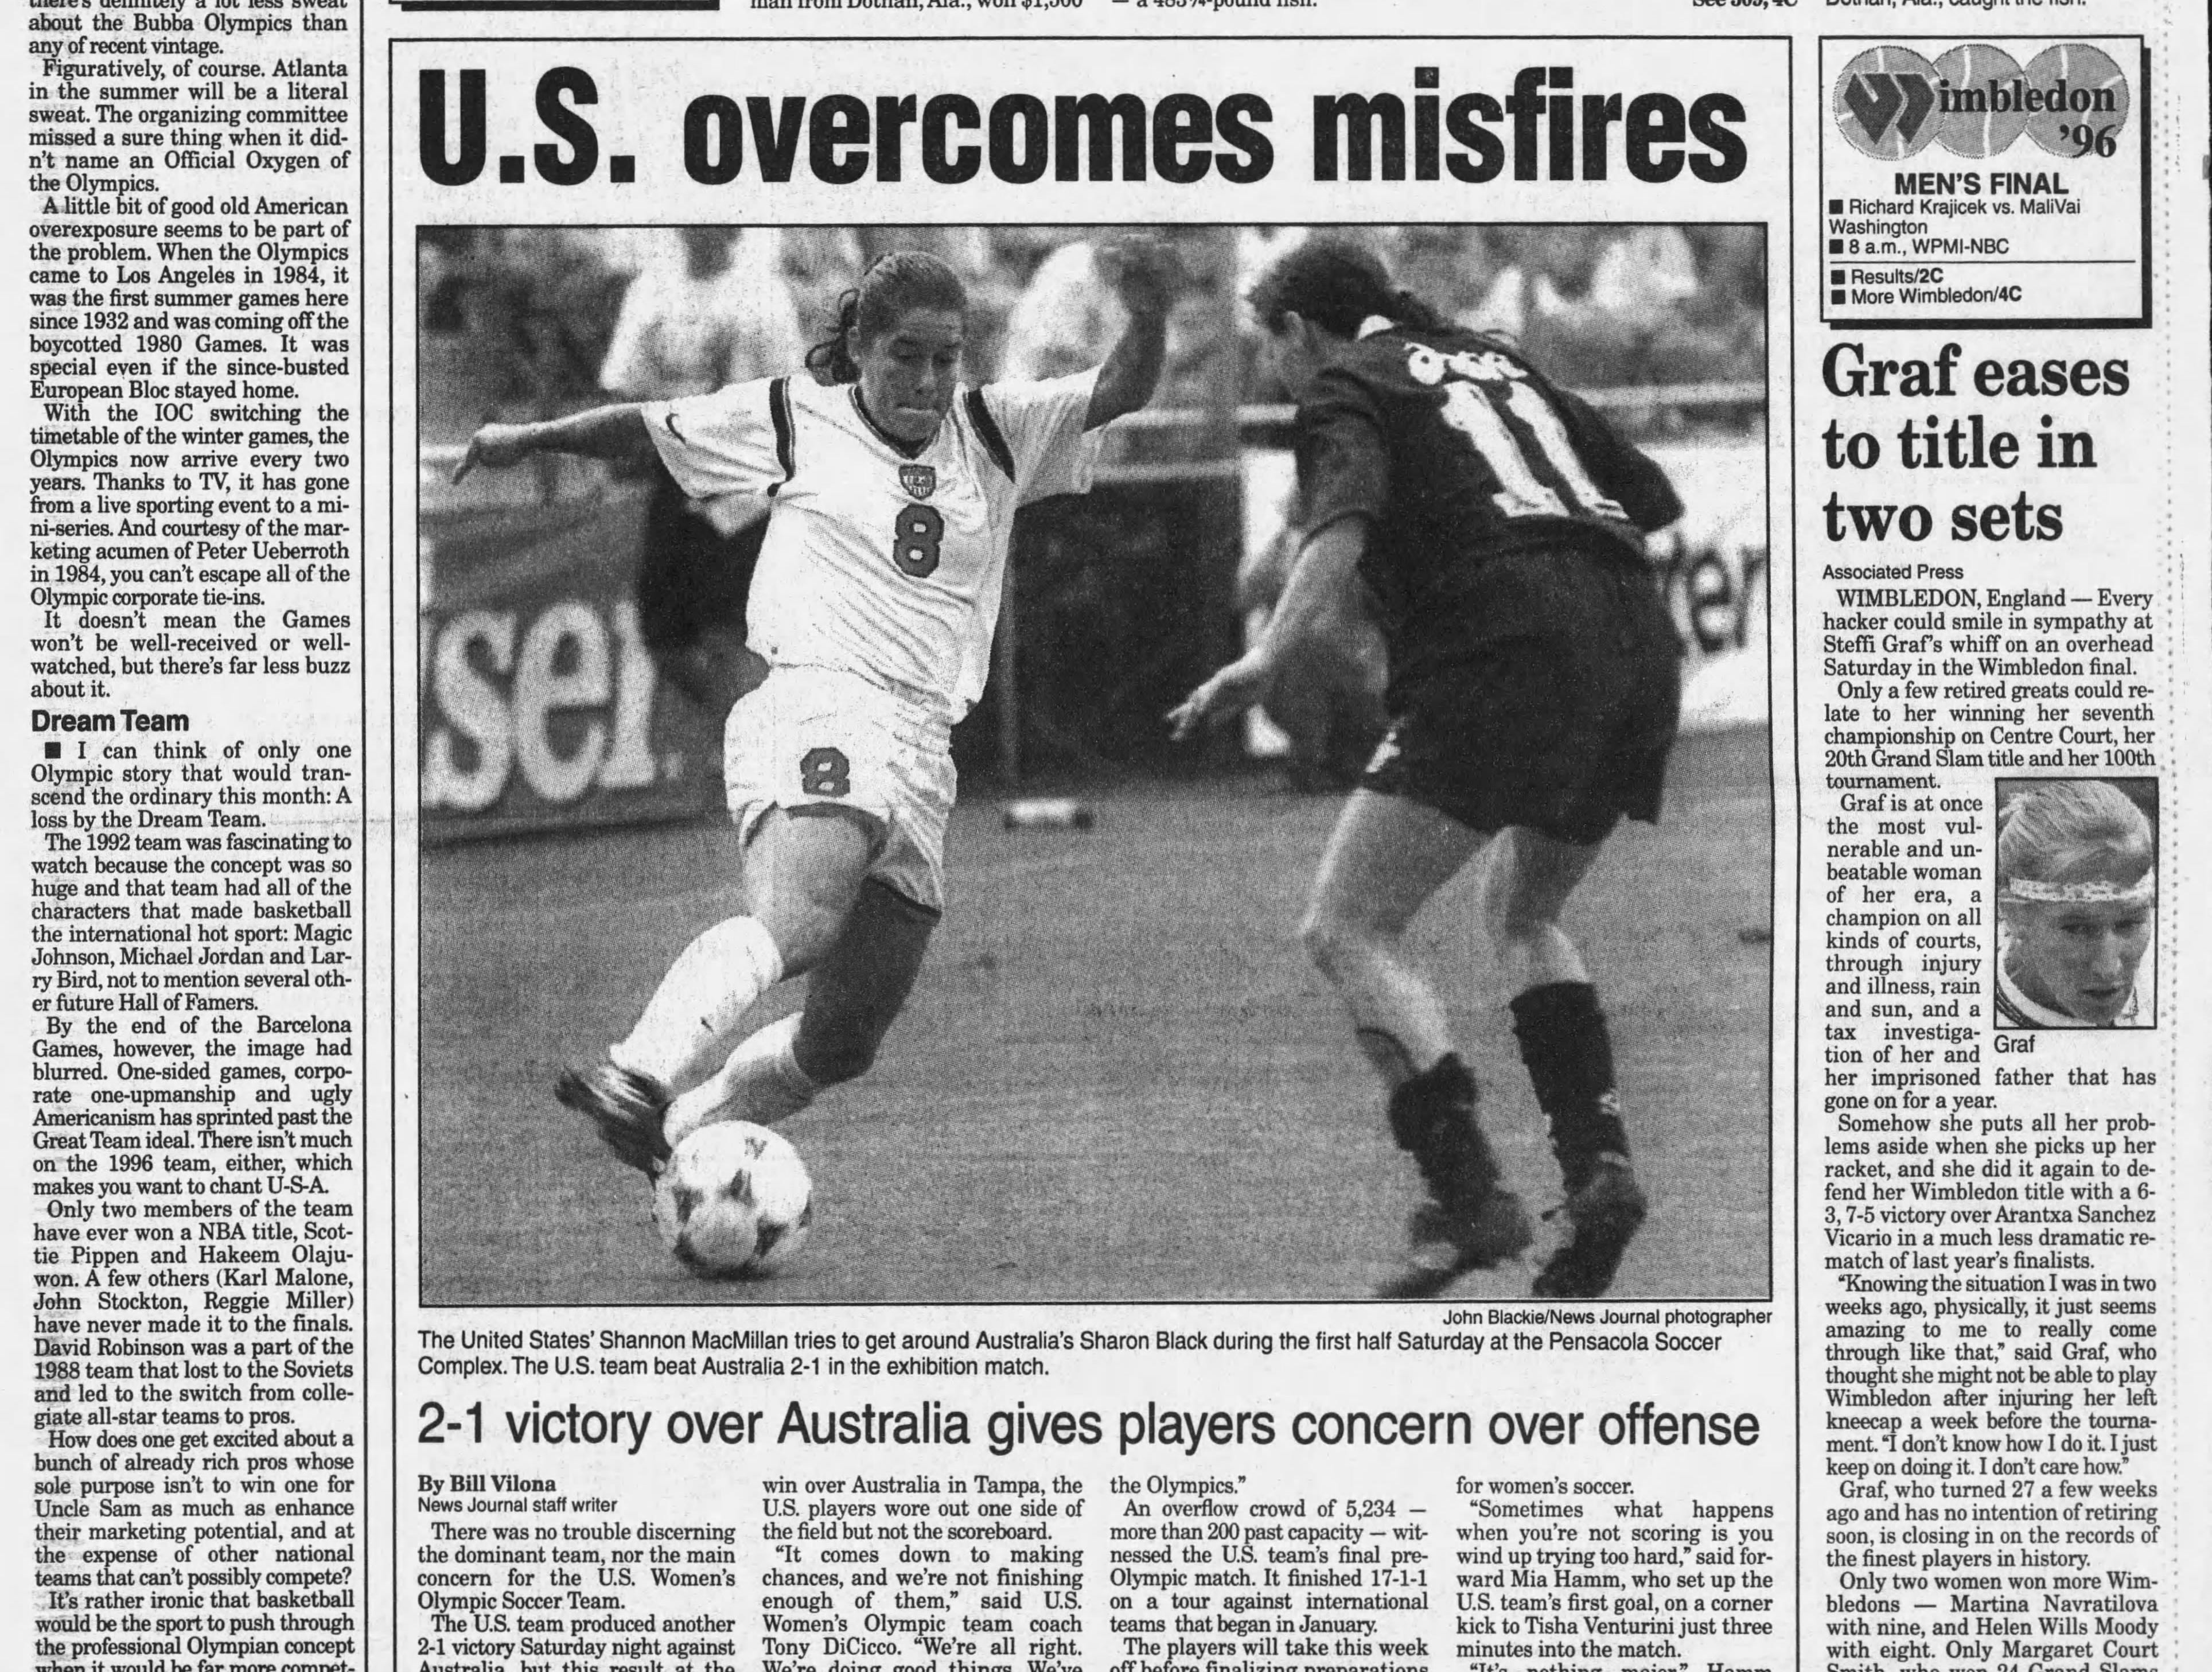 July 1996: US Olympic women's soccer team plays in Pensacola with legends Mia Hamm and Brandi Chastain.